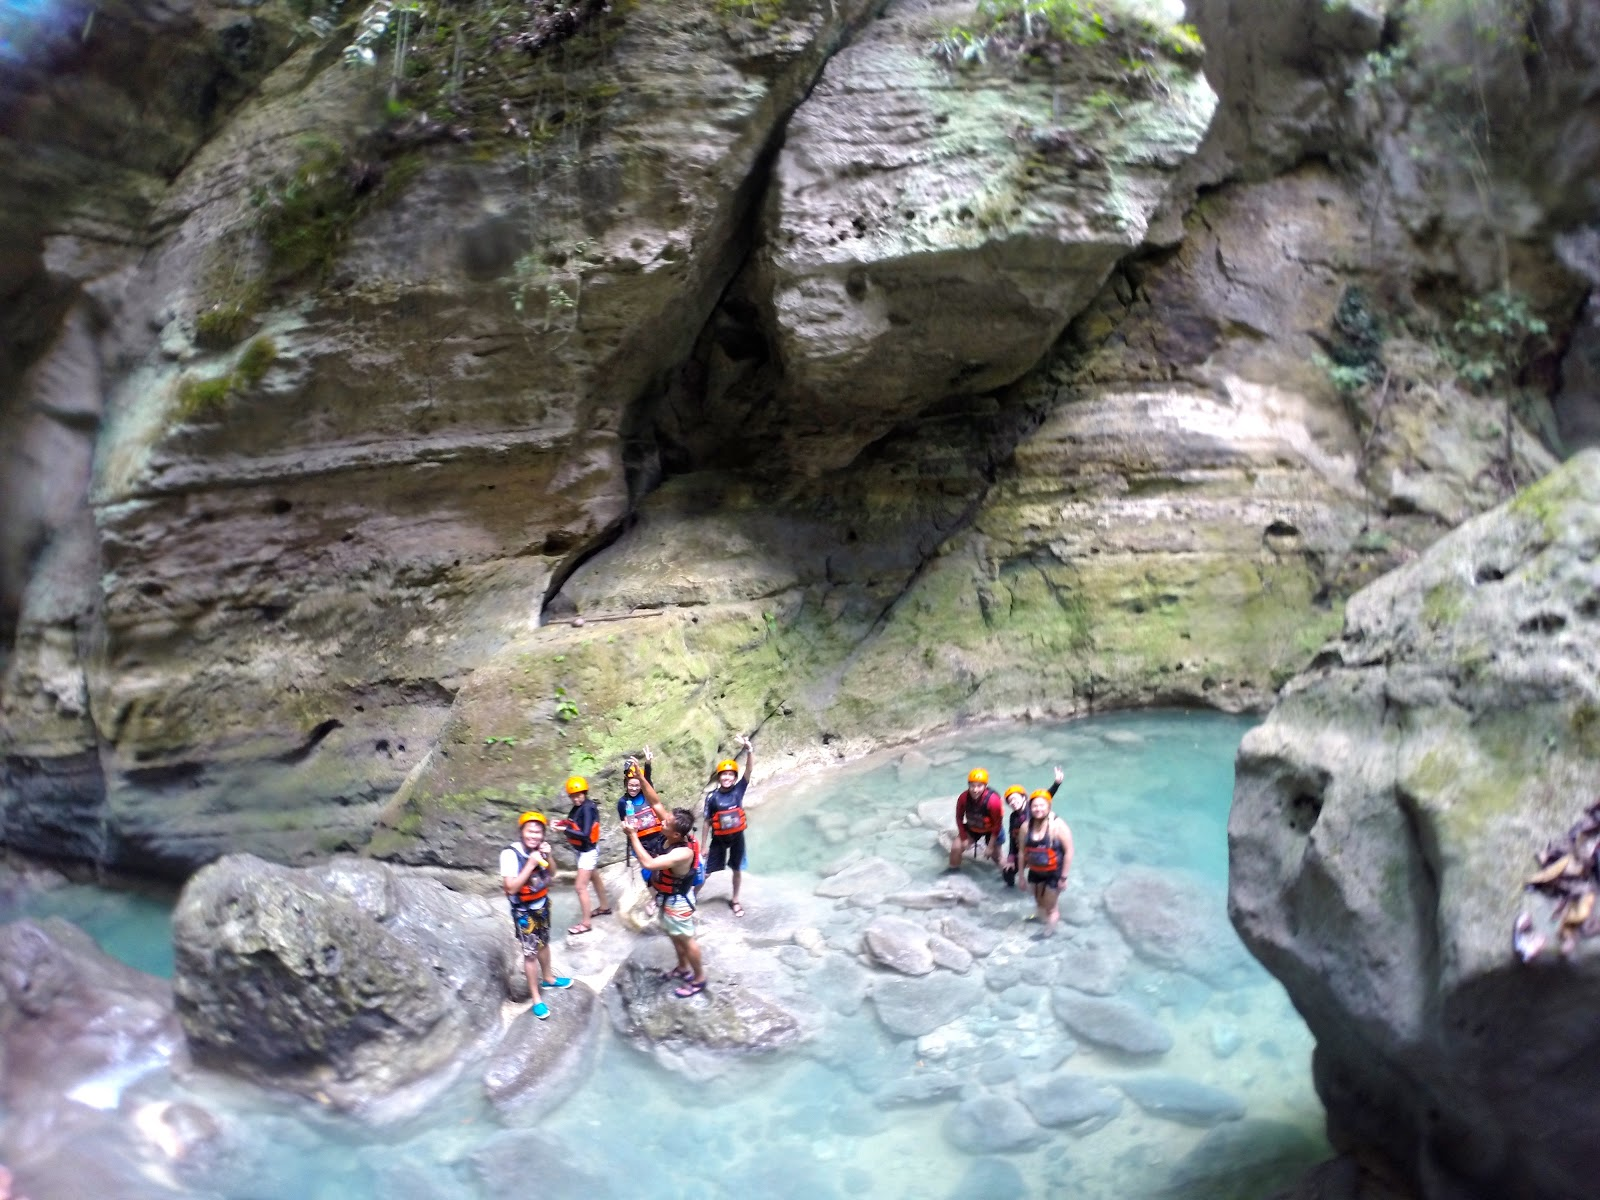 Canyoneering in Badian, Cebu